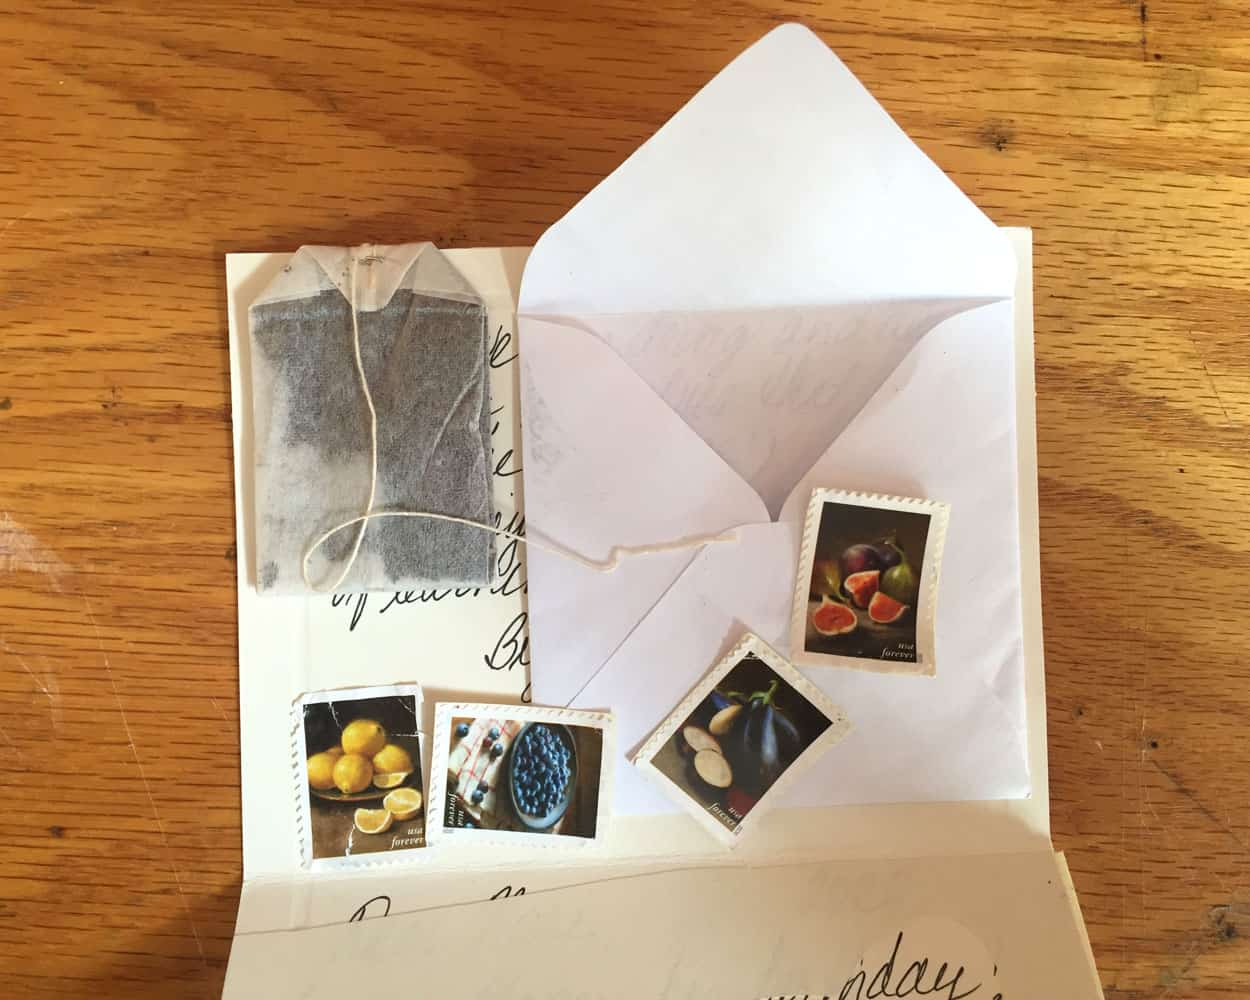 the envelope attached to a letter is open with its contents displayed: a tea bag and stamps depicting fruit.